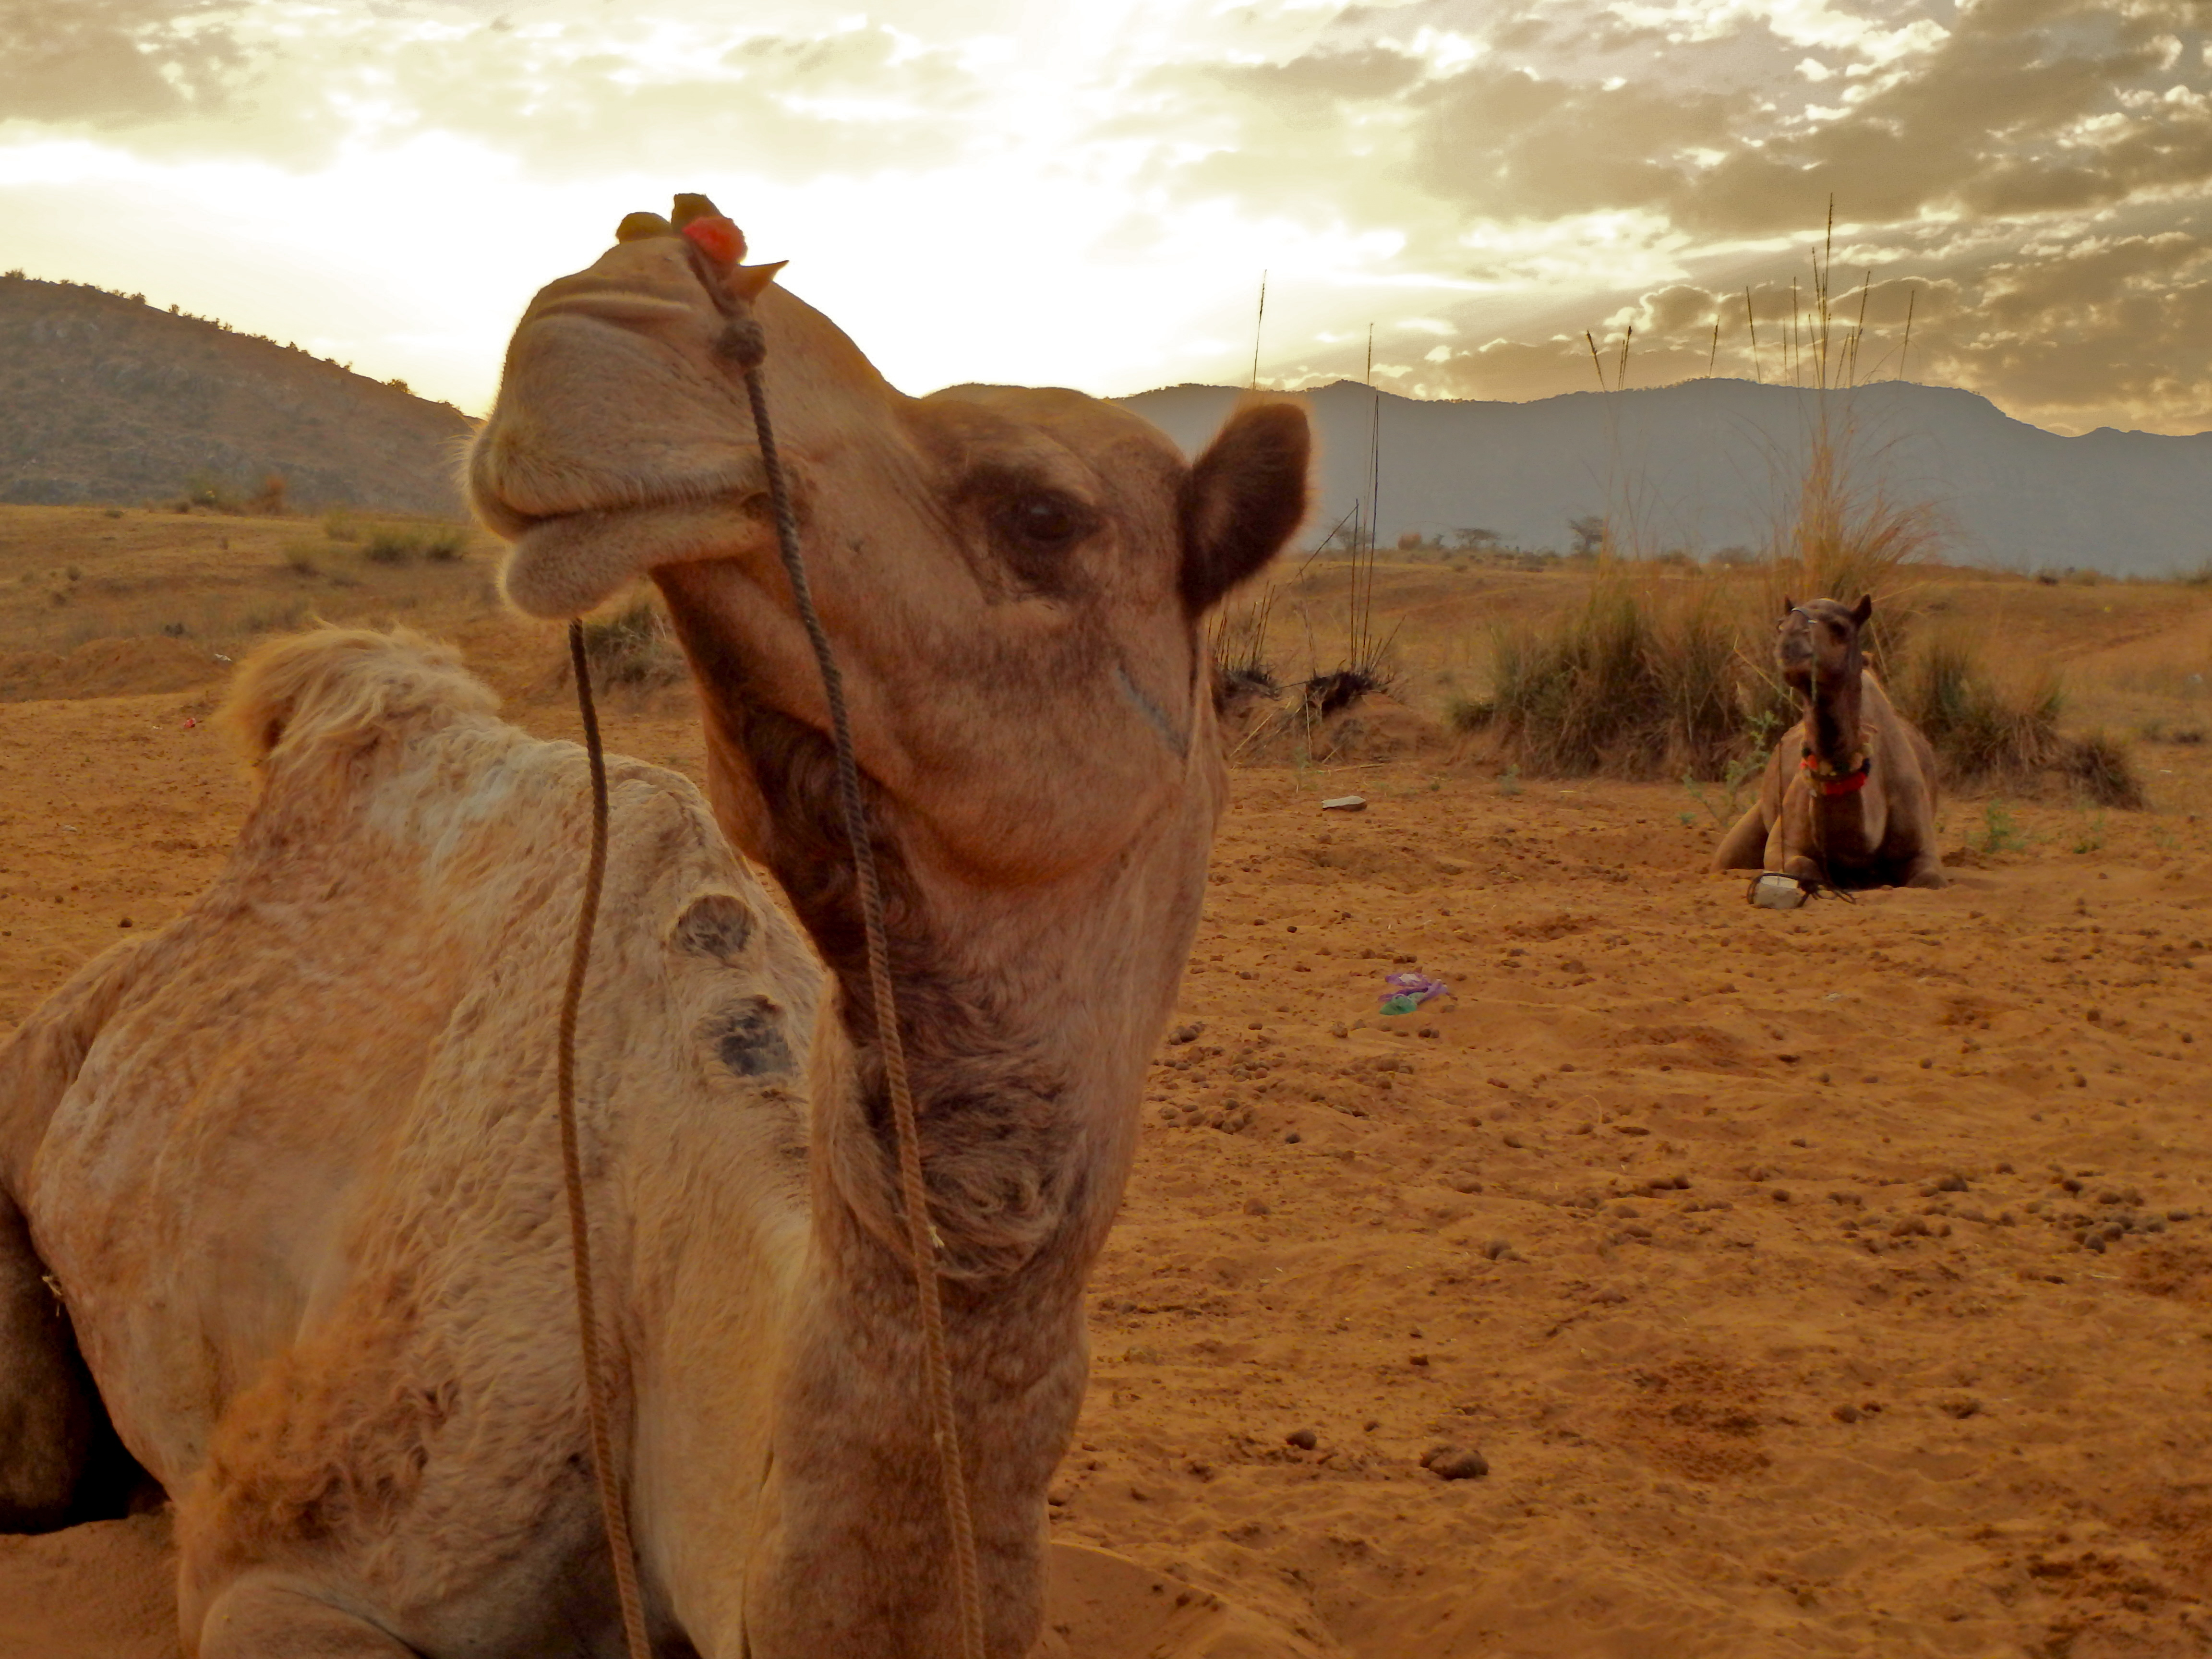 camels in the desert in india where to see the desert in india best overnight trips in india what to do in ten days in india